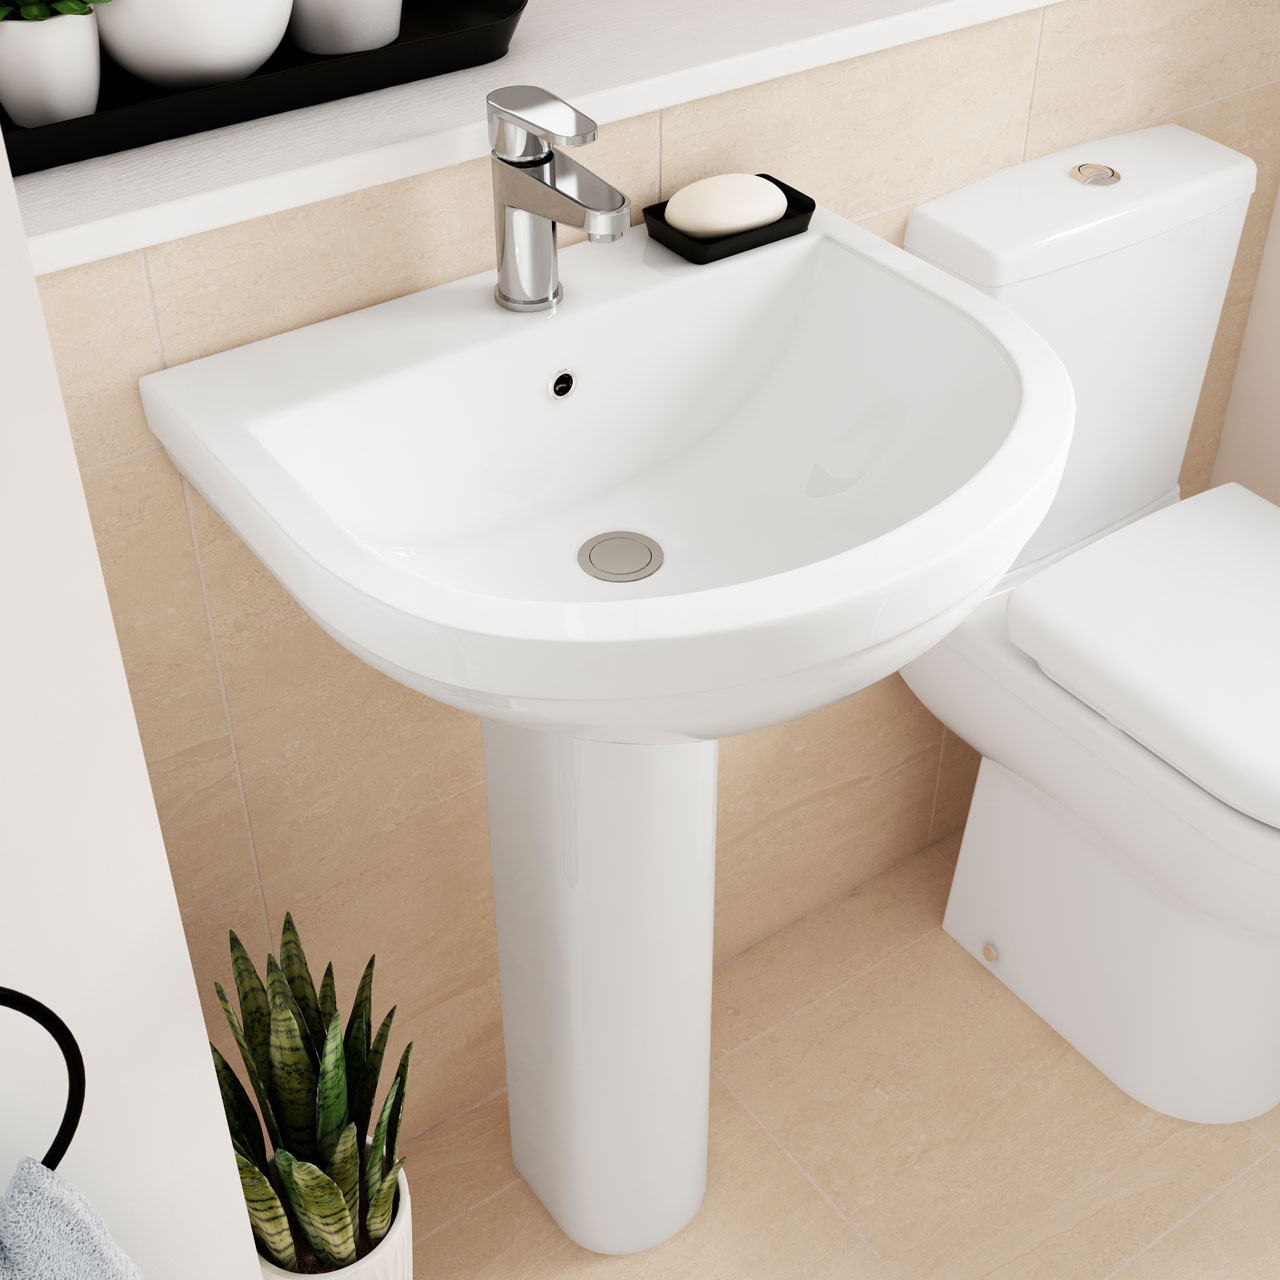 Premier Ivo 550mm Basin with 1 Tap Hole and Full Pedestal - Lifestyle 1 - CIV002